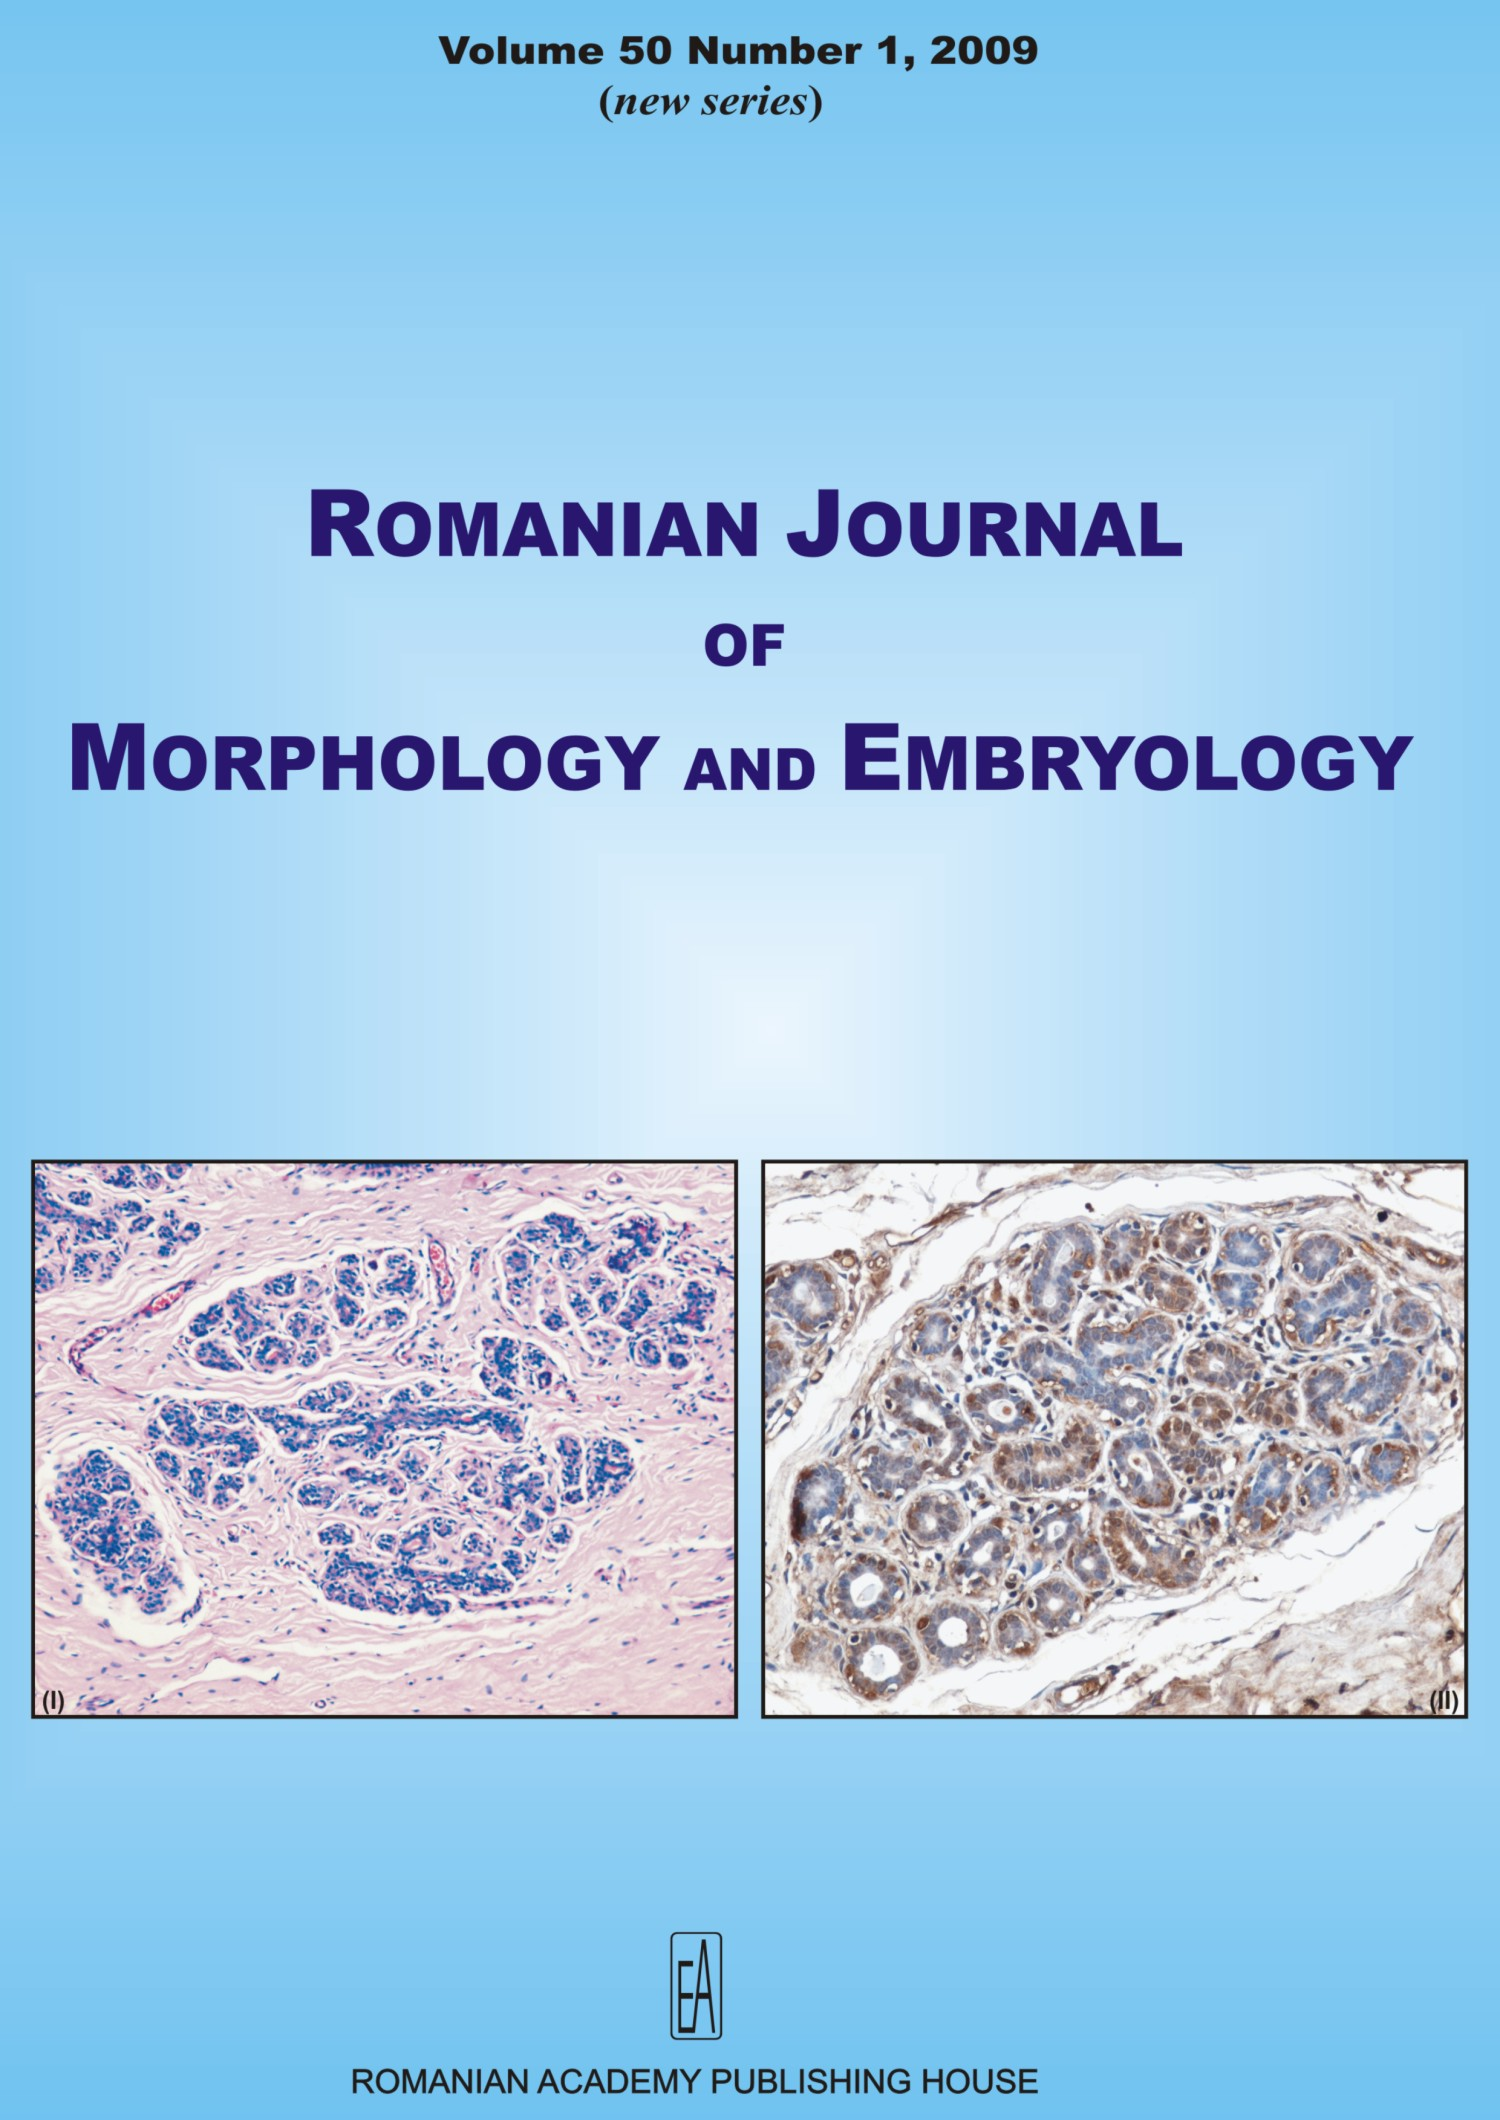 Romanian Journal of Morphology and Embryology, vol. 50 no. 1, 2009